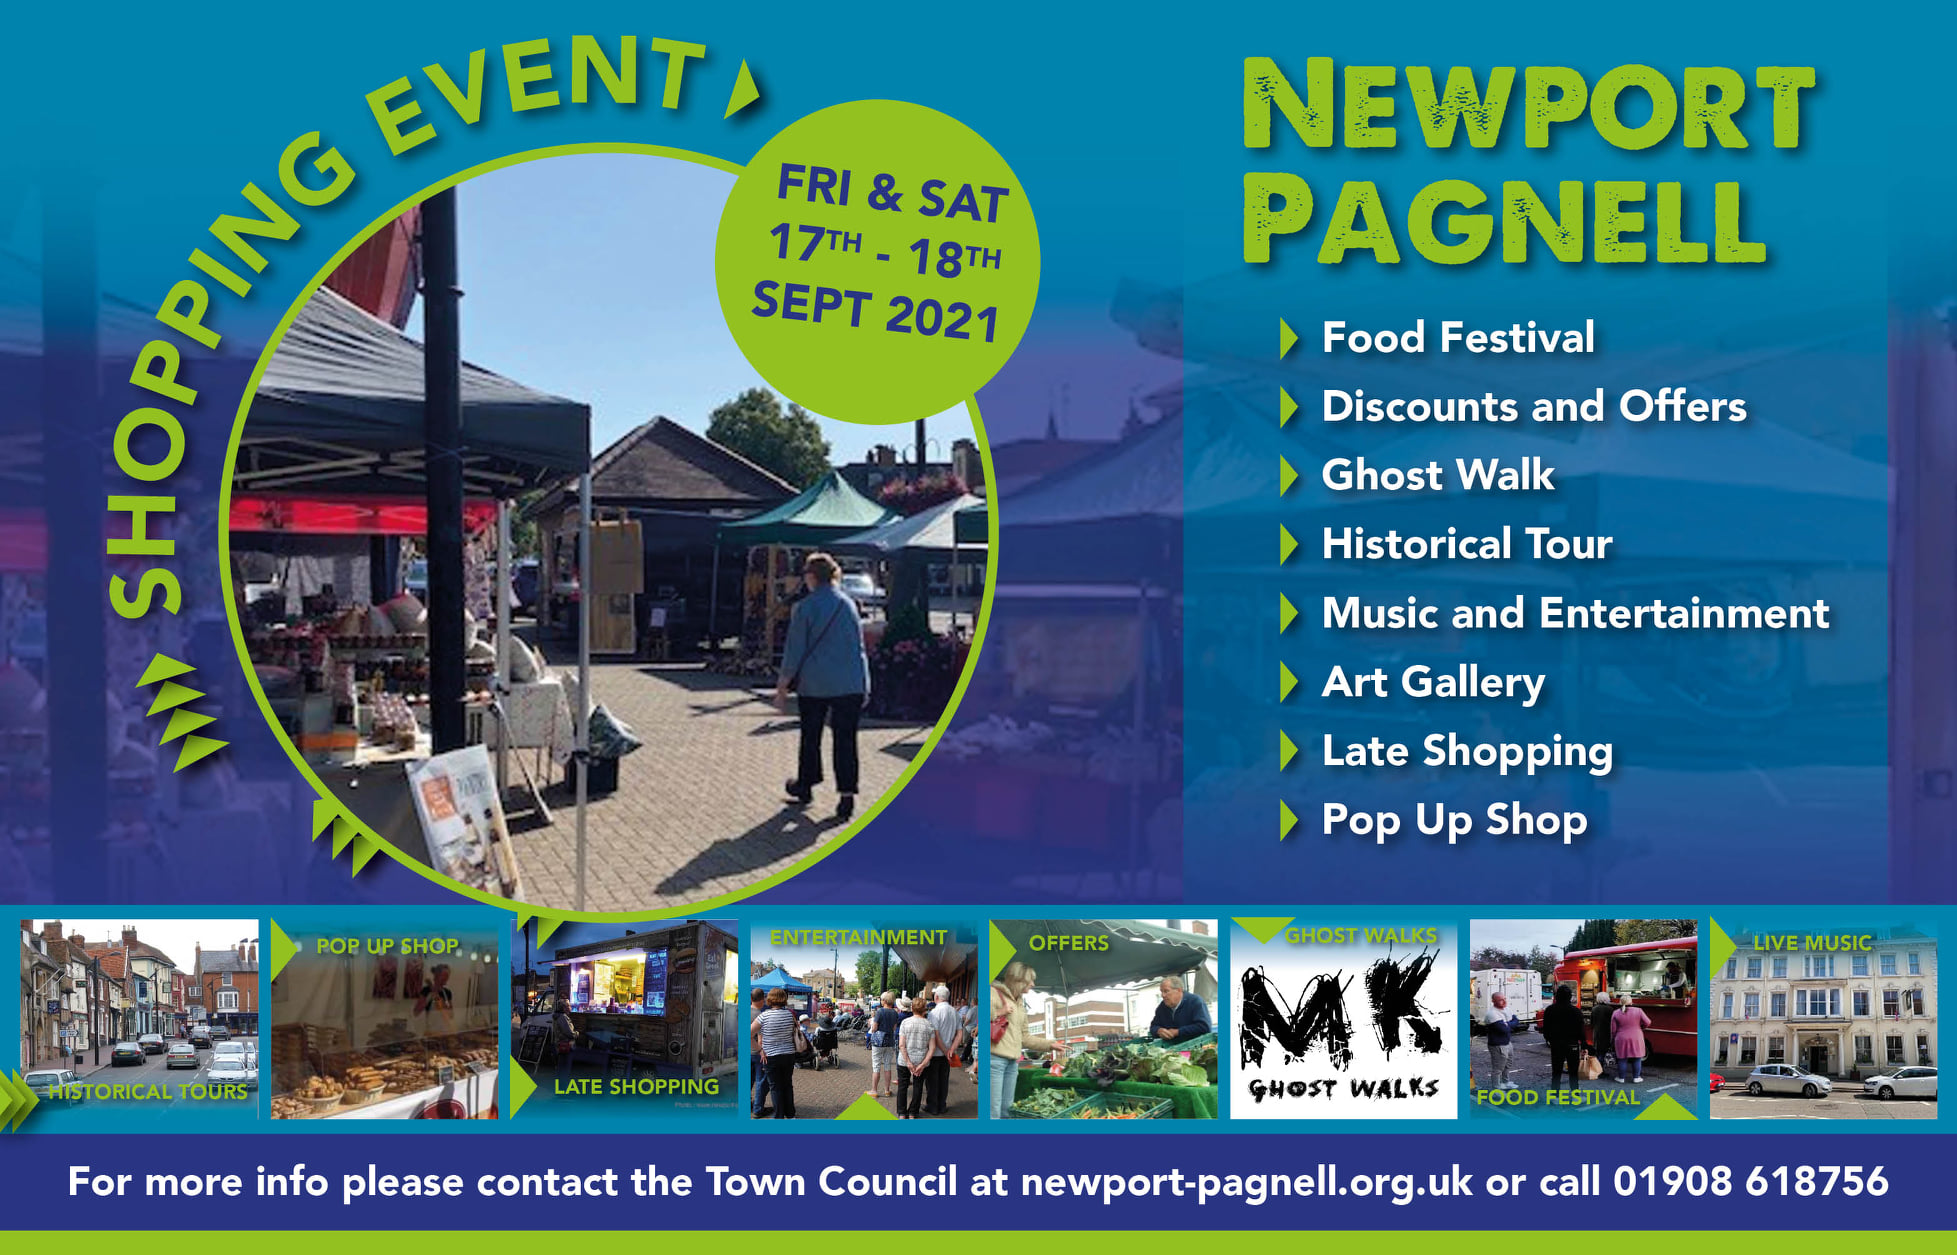 Newport Pagnell Shopping